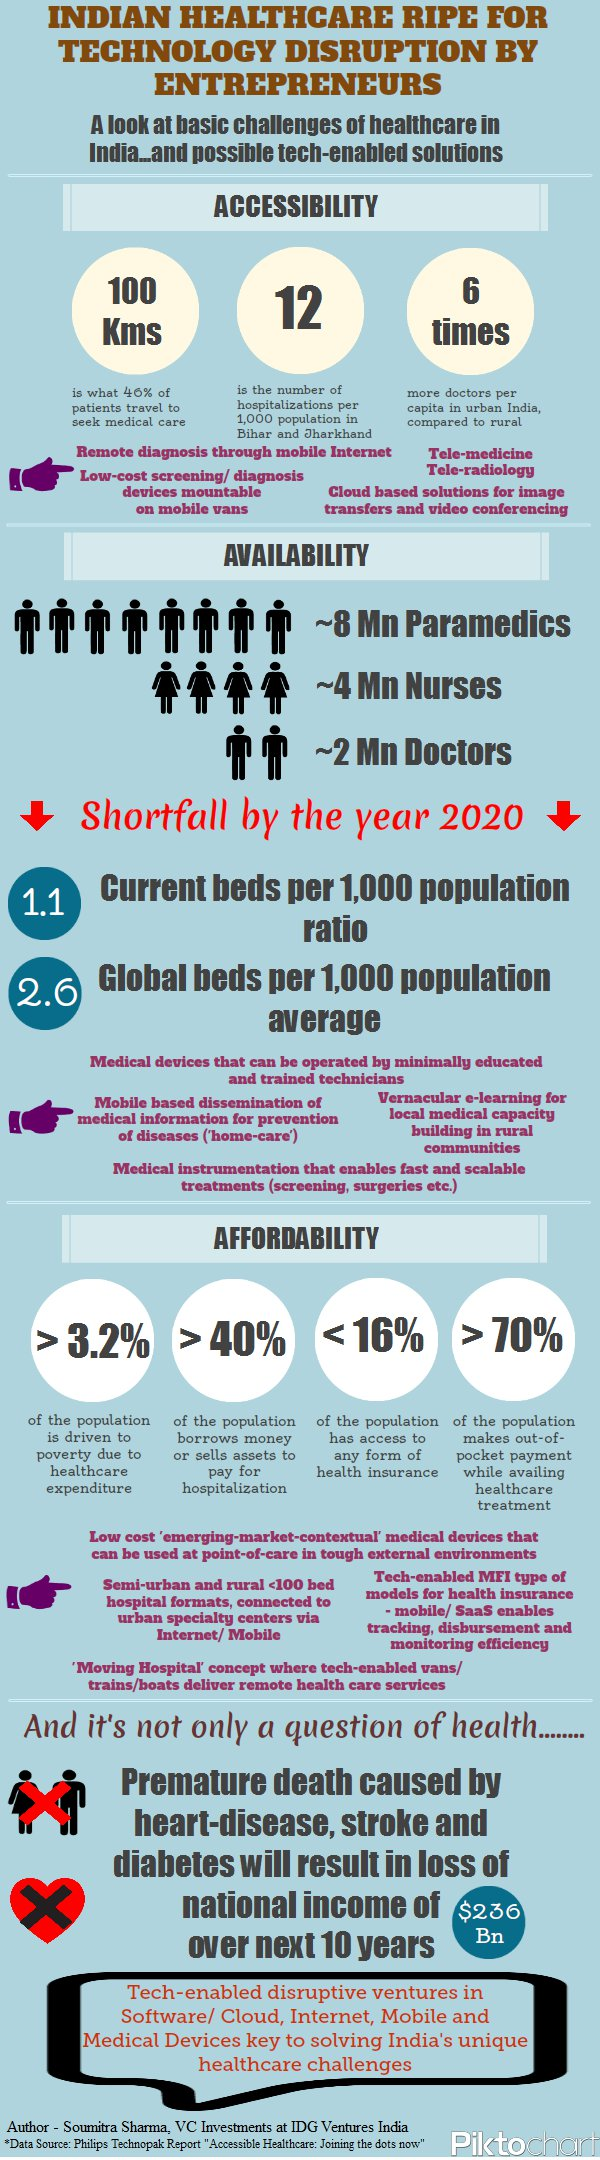 Why Is Healthcare The Next Big Thing In India Infographic